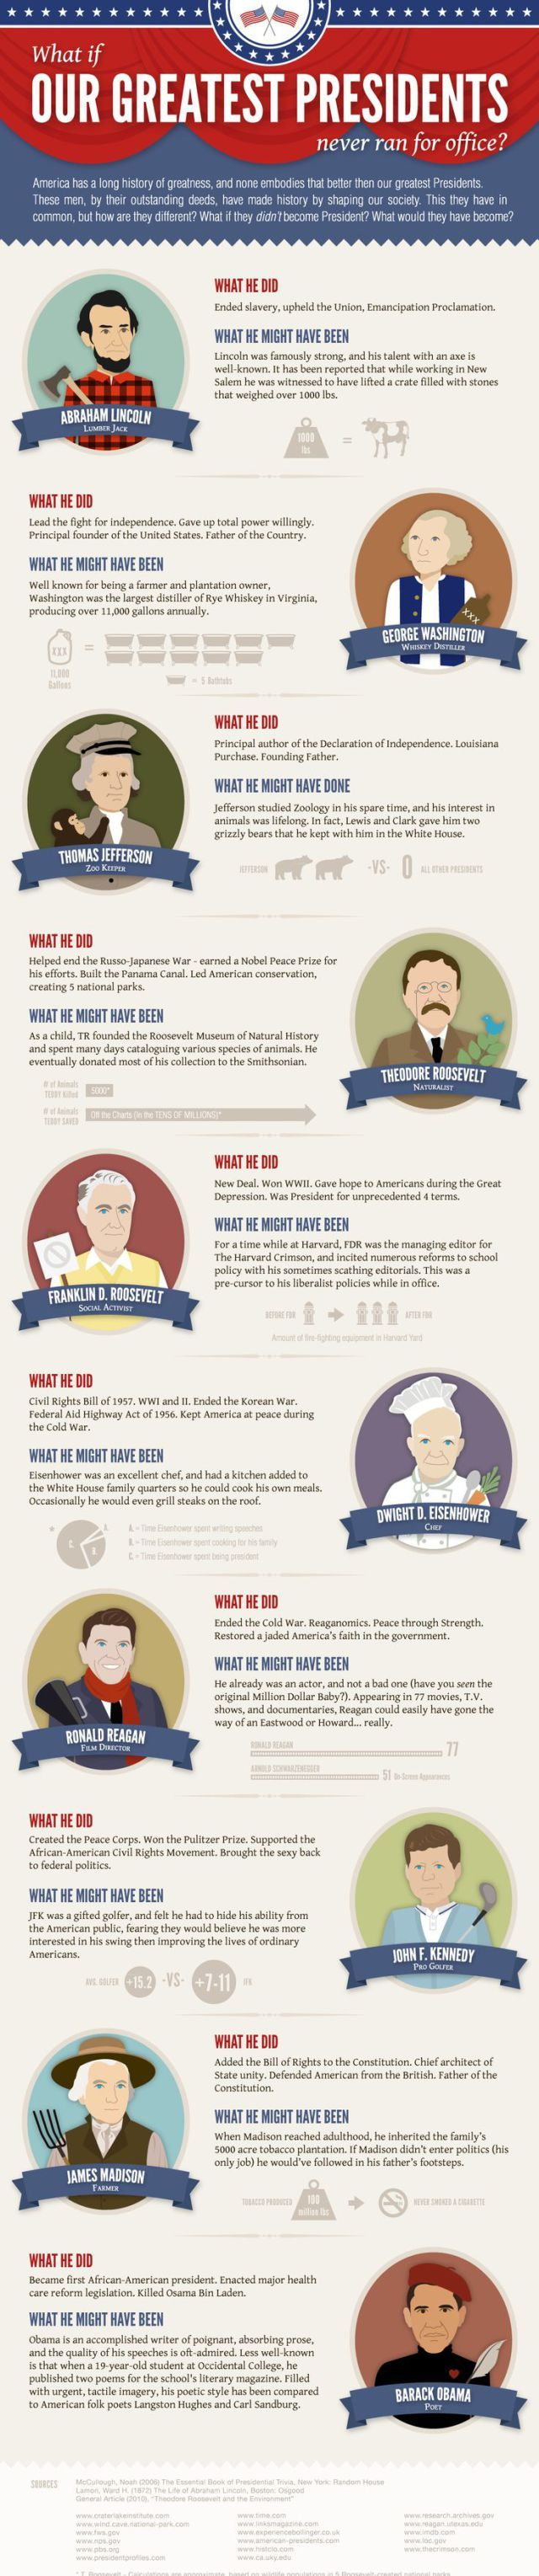 Educational : What if our greatest presidents never ran for office?